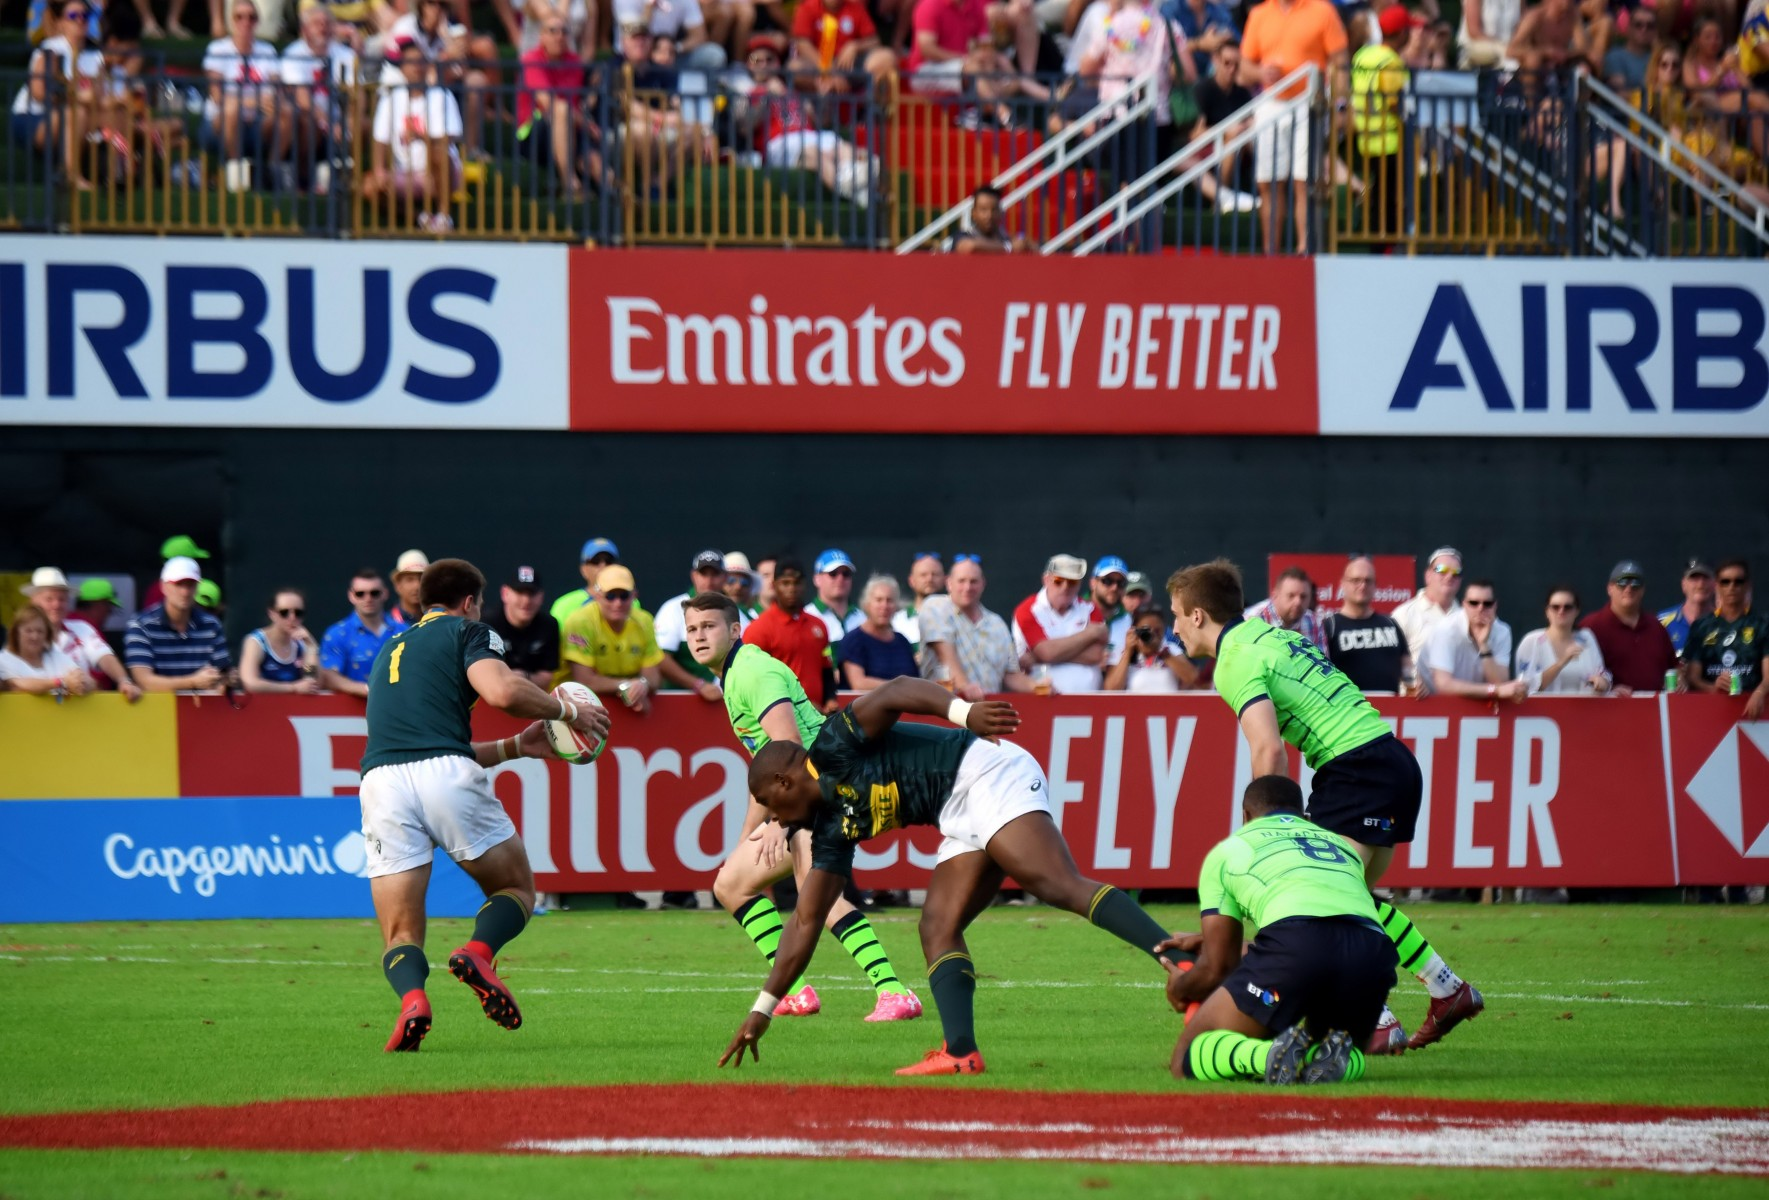 Emirates raises the excitement at the 50th running of the Emirates Airline Dubai Rugby Sevens